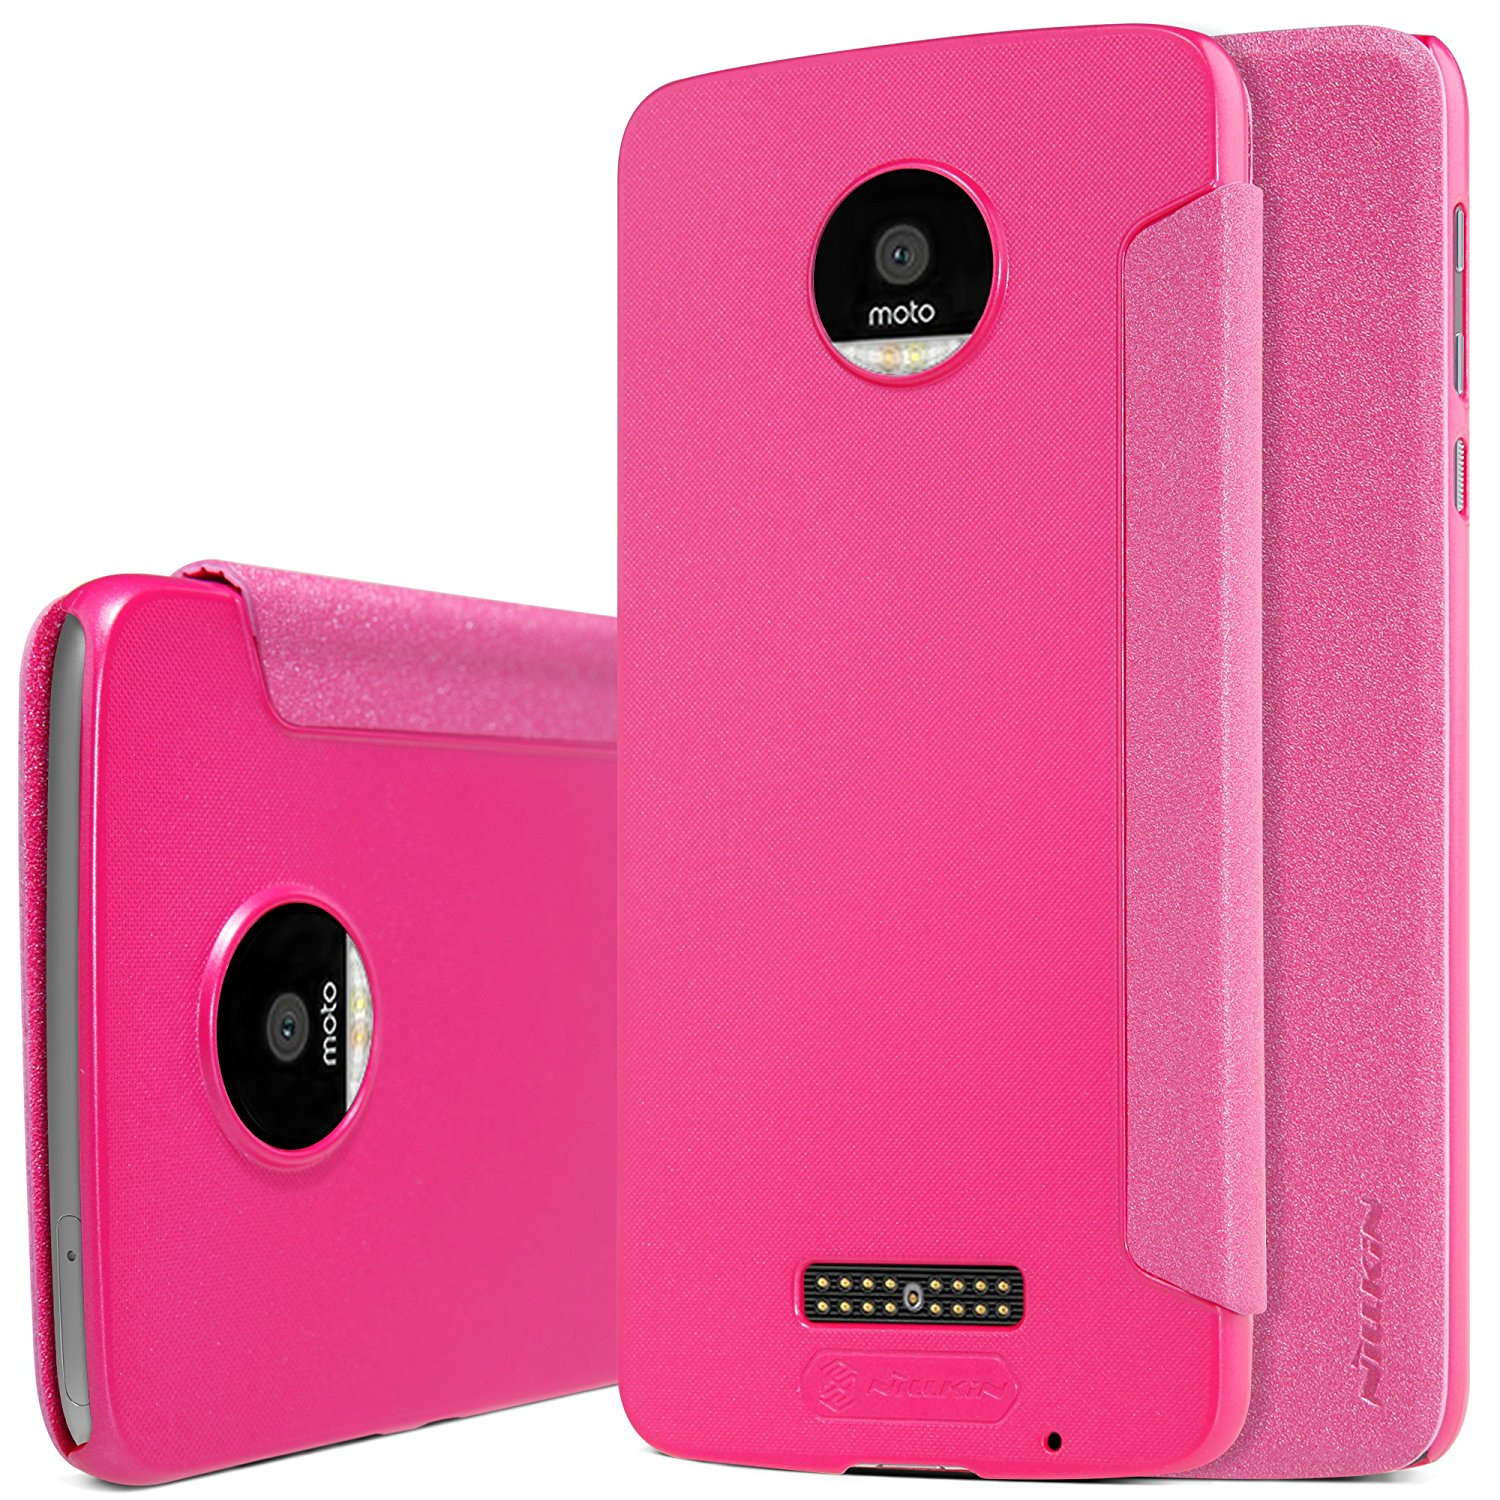 MOTO Z Play Case, Starhemei Ultra-Thin PC Back Cover Folio/Flip PU Leather Phone Case Cover For Motorola Moto Z Play Droid (2016) (Leather-Hot Pink)